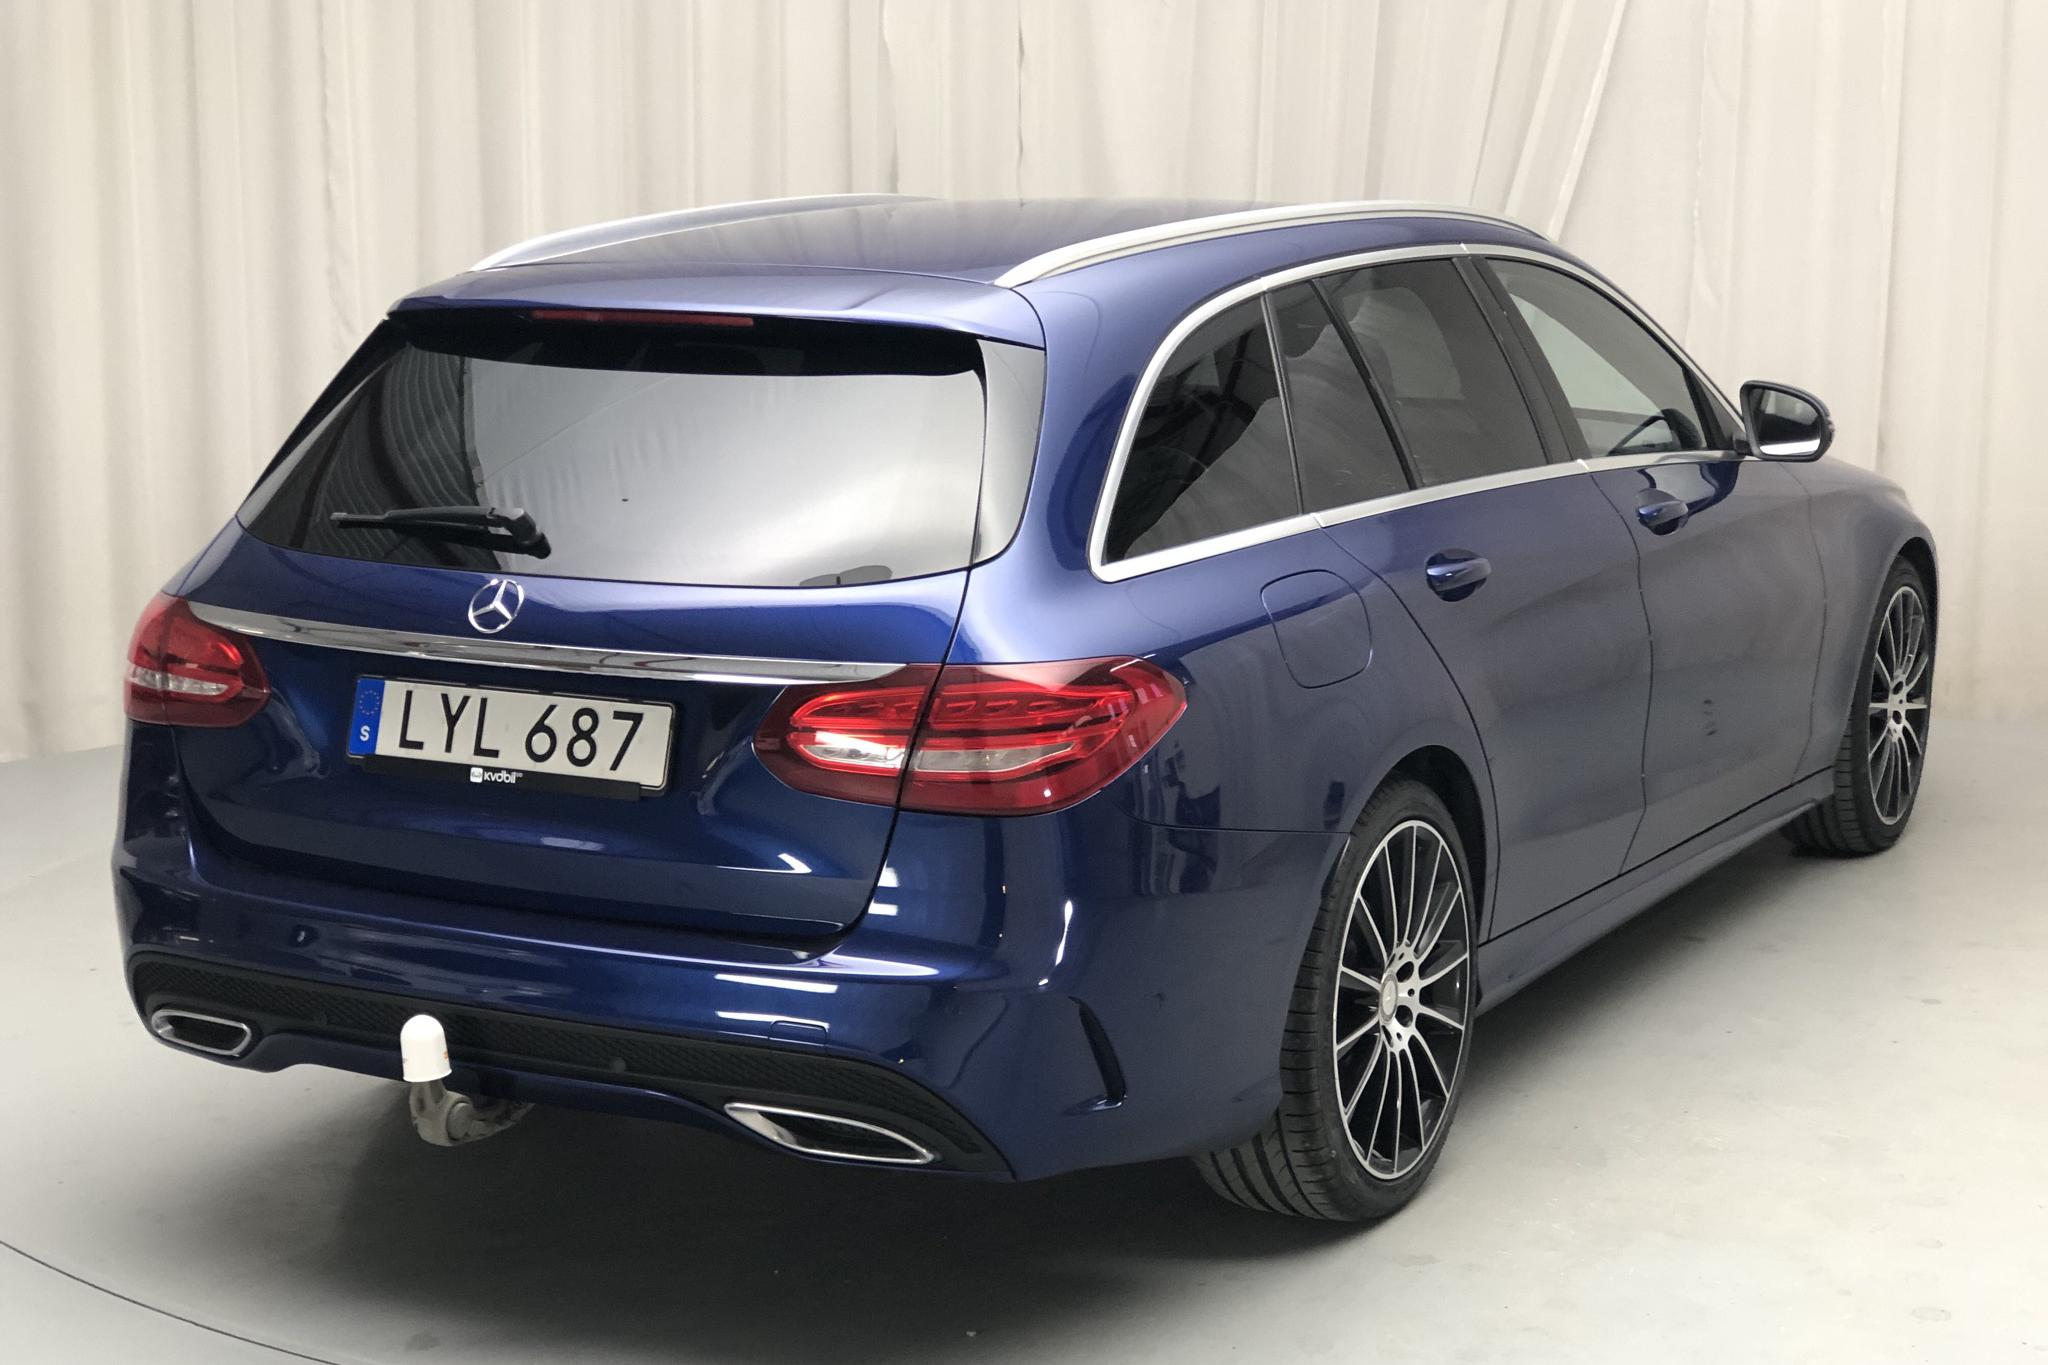 Mercedes C 220 d 4MATIC Kombi S205 (170hk) - 127 650 km - Automatic - blue - 2016